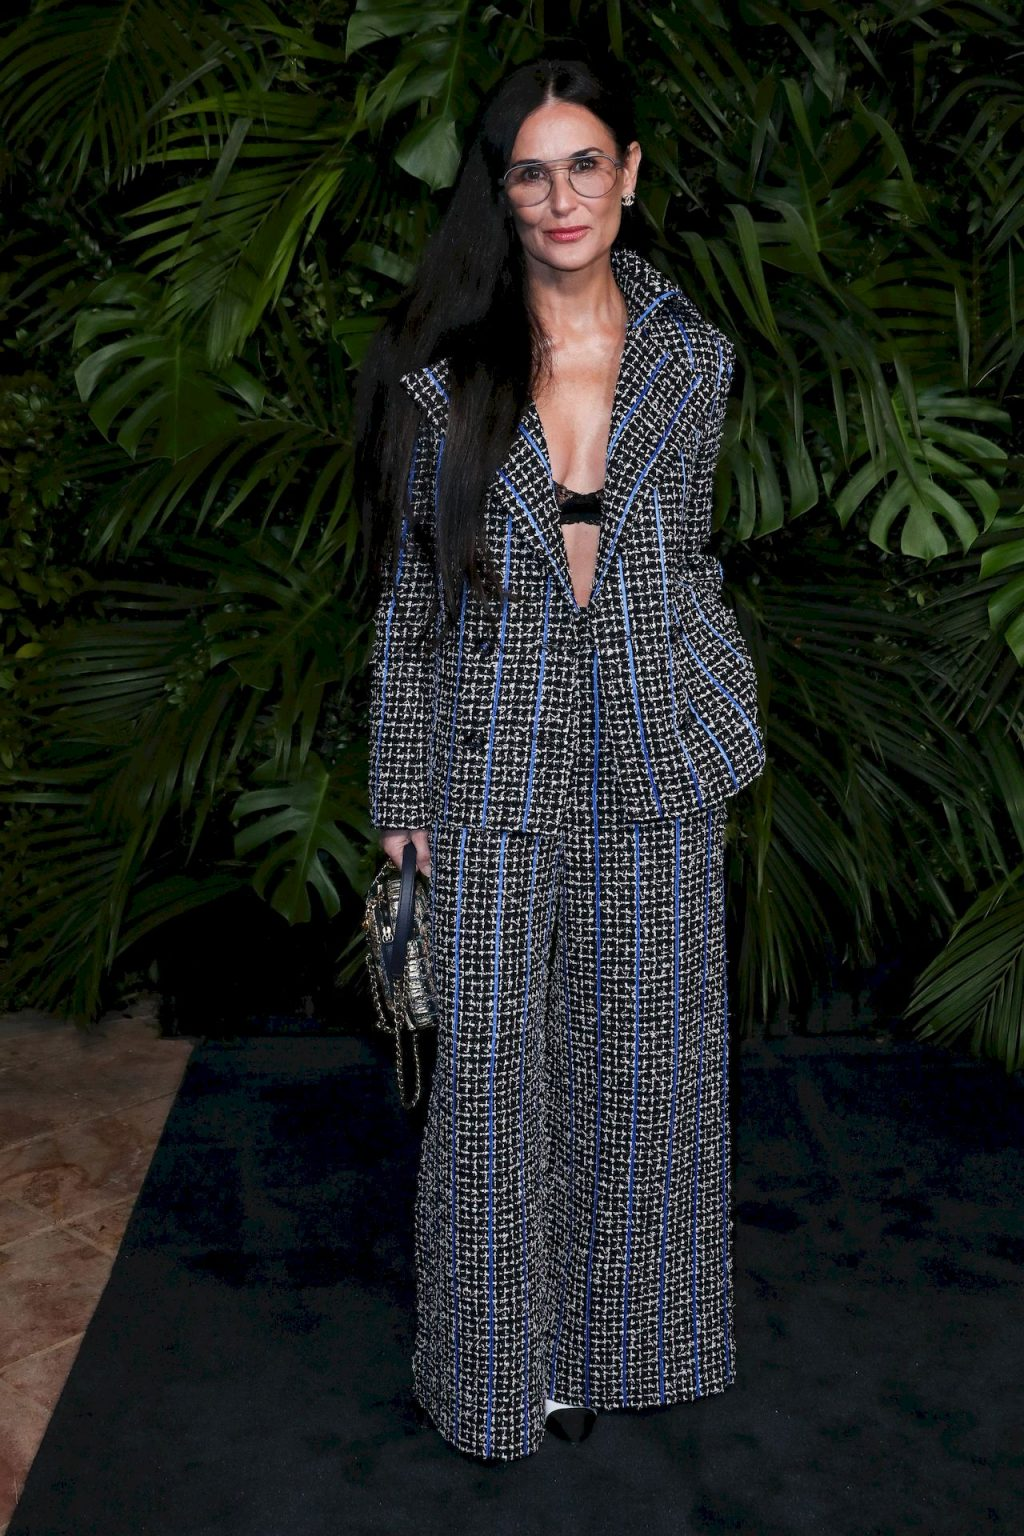 Demi Moore Flashes Her Underwear at the Party (3 Photos)